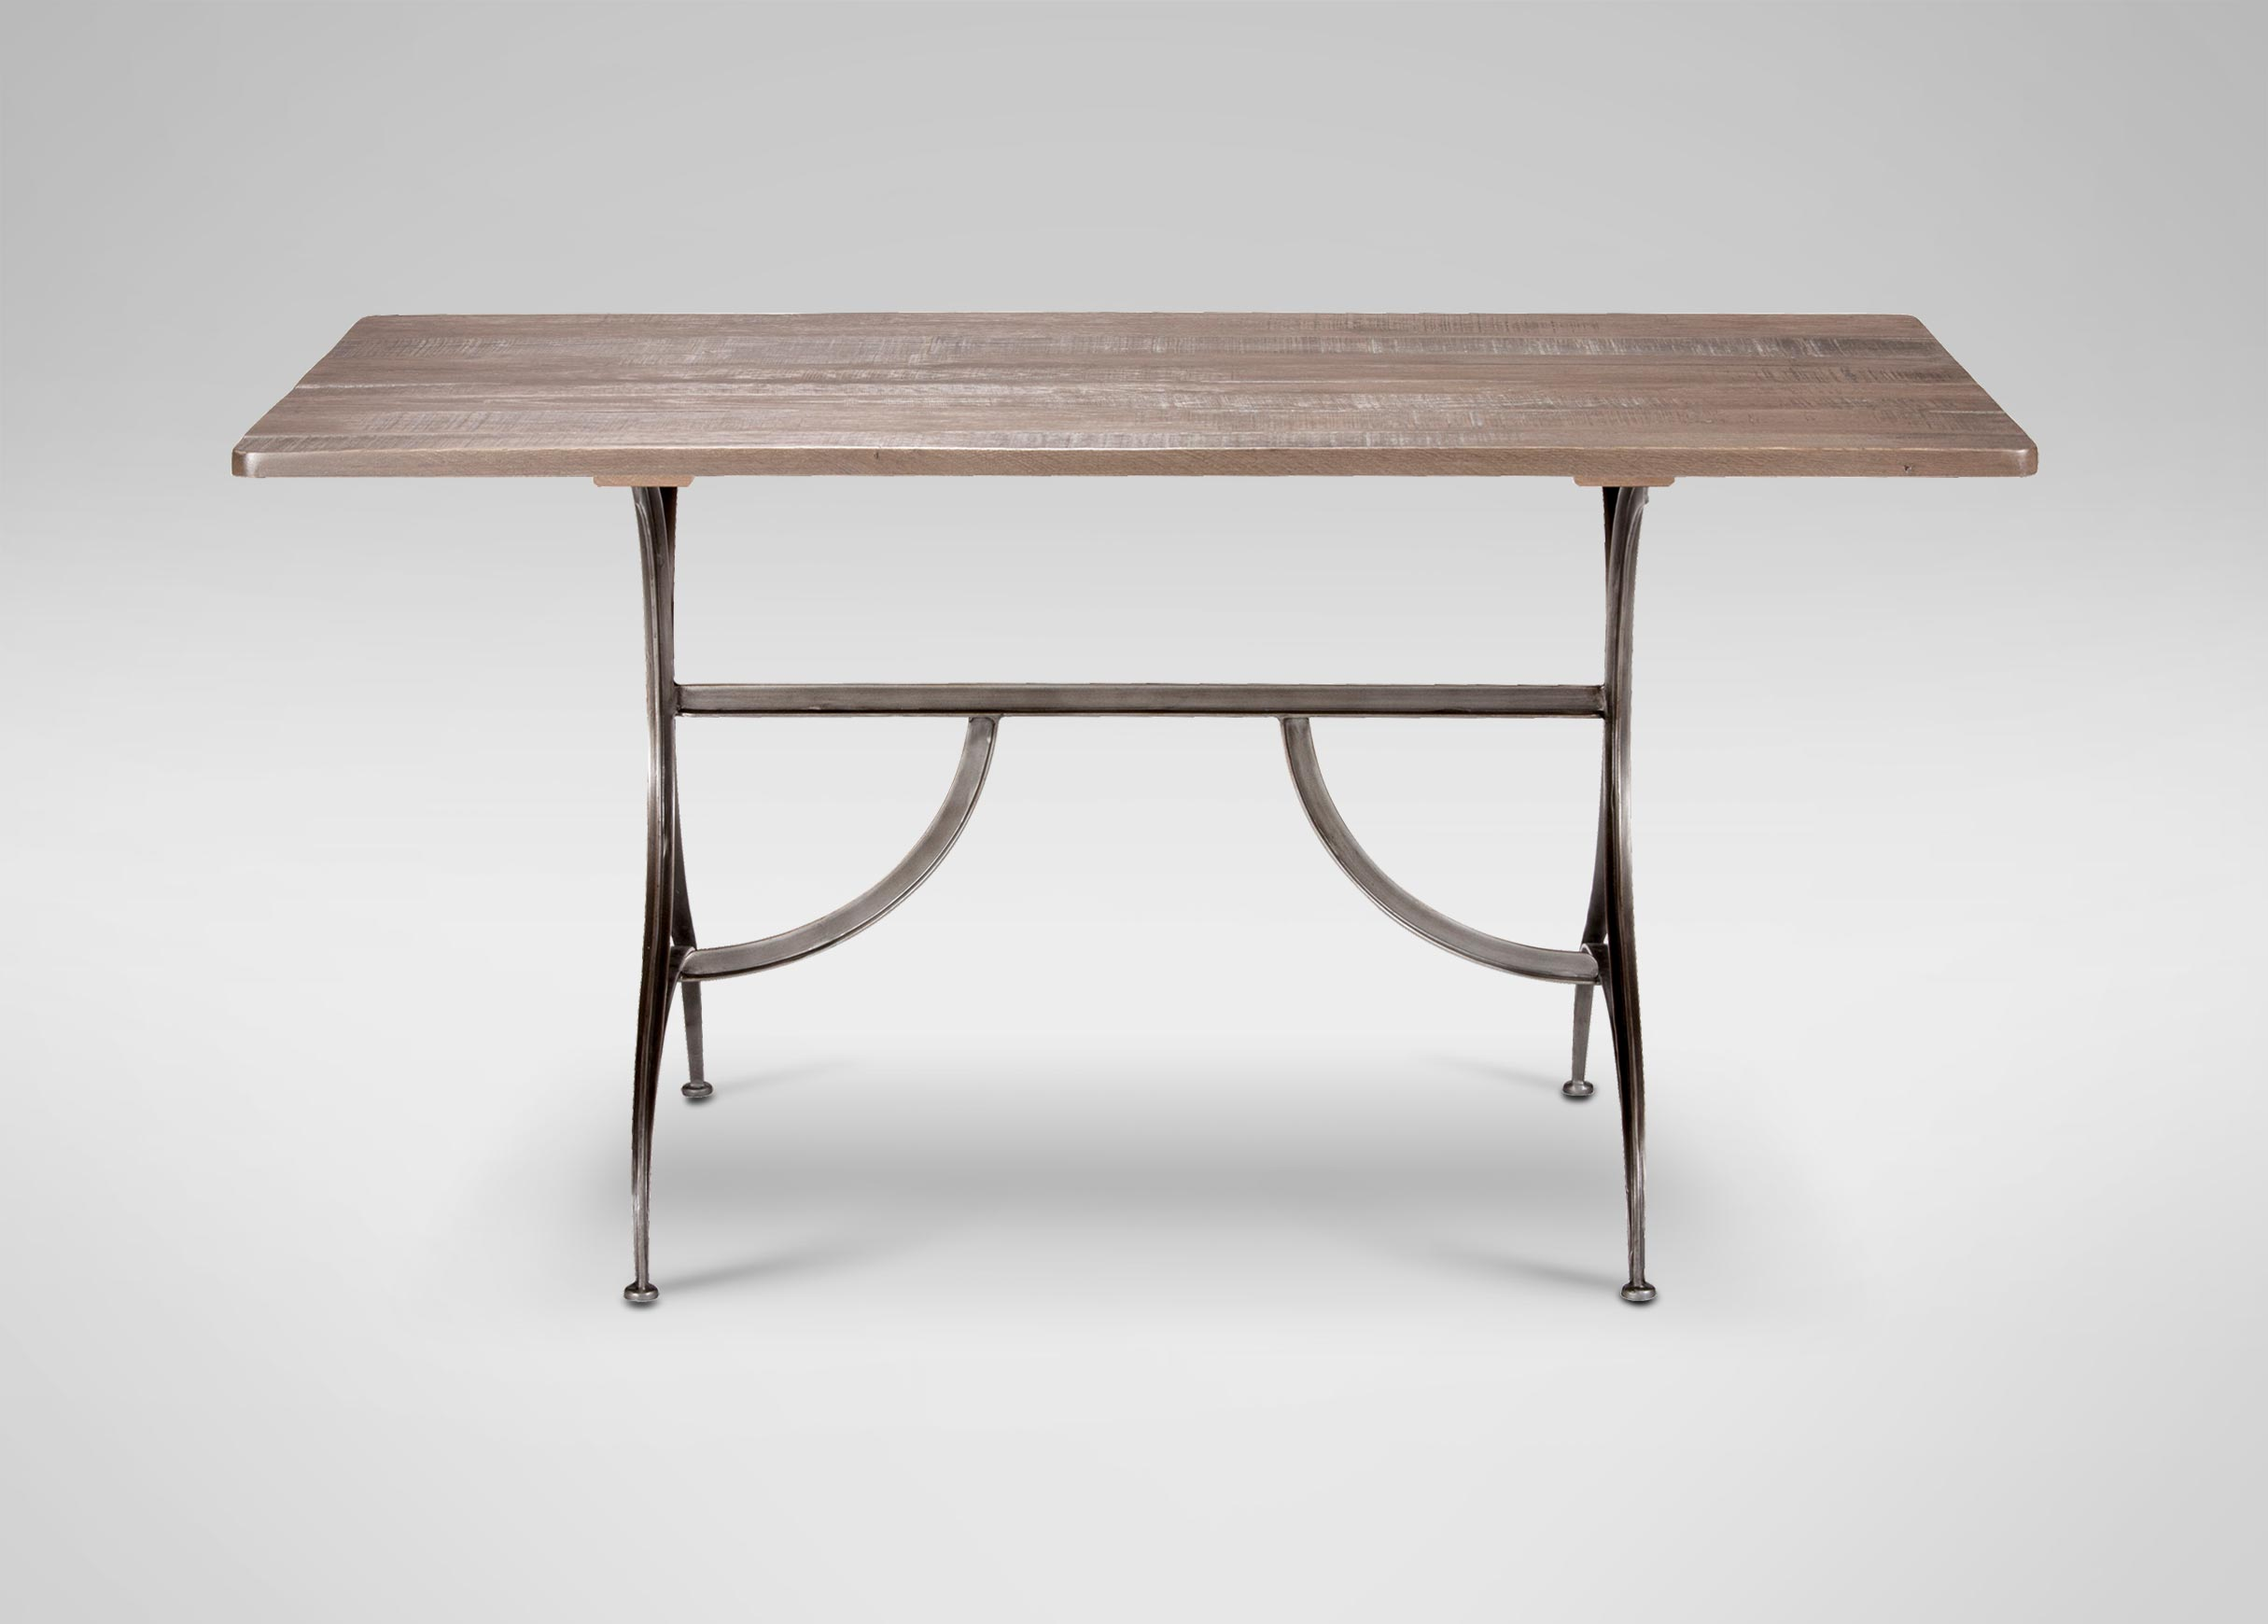 Finland Table Dining Tables Ethan Allen SiteGenesis